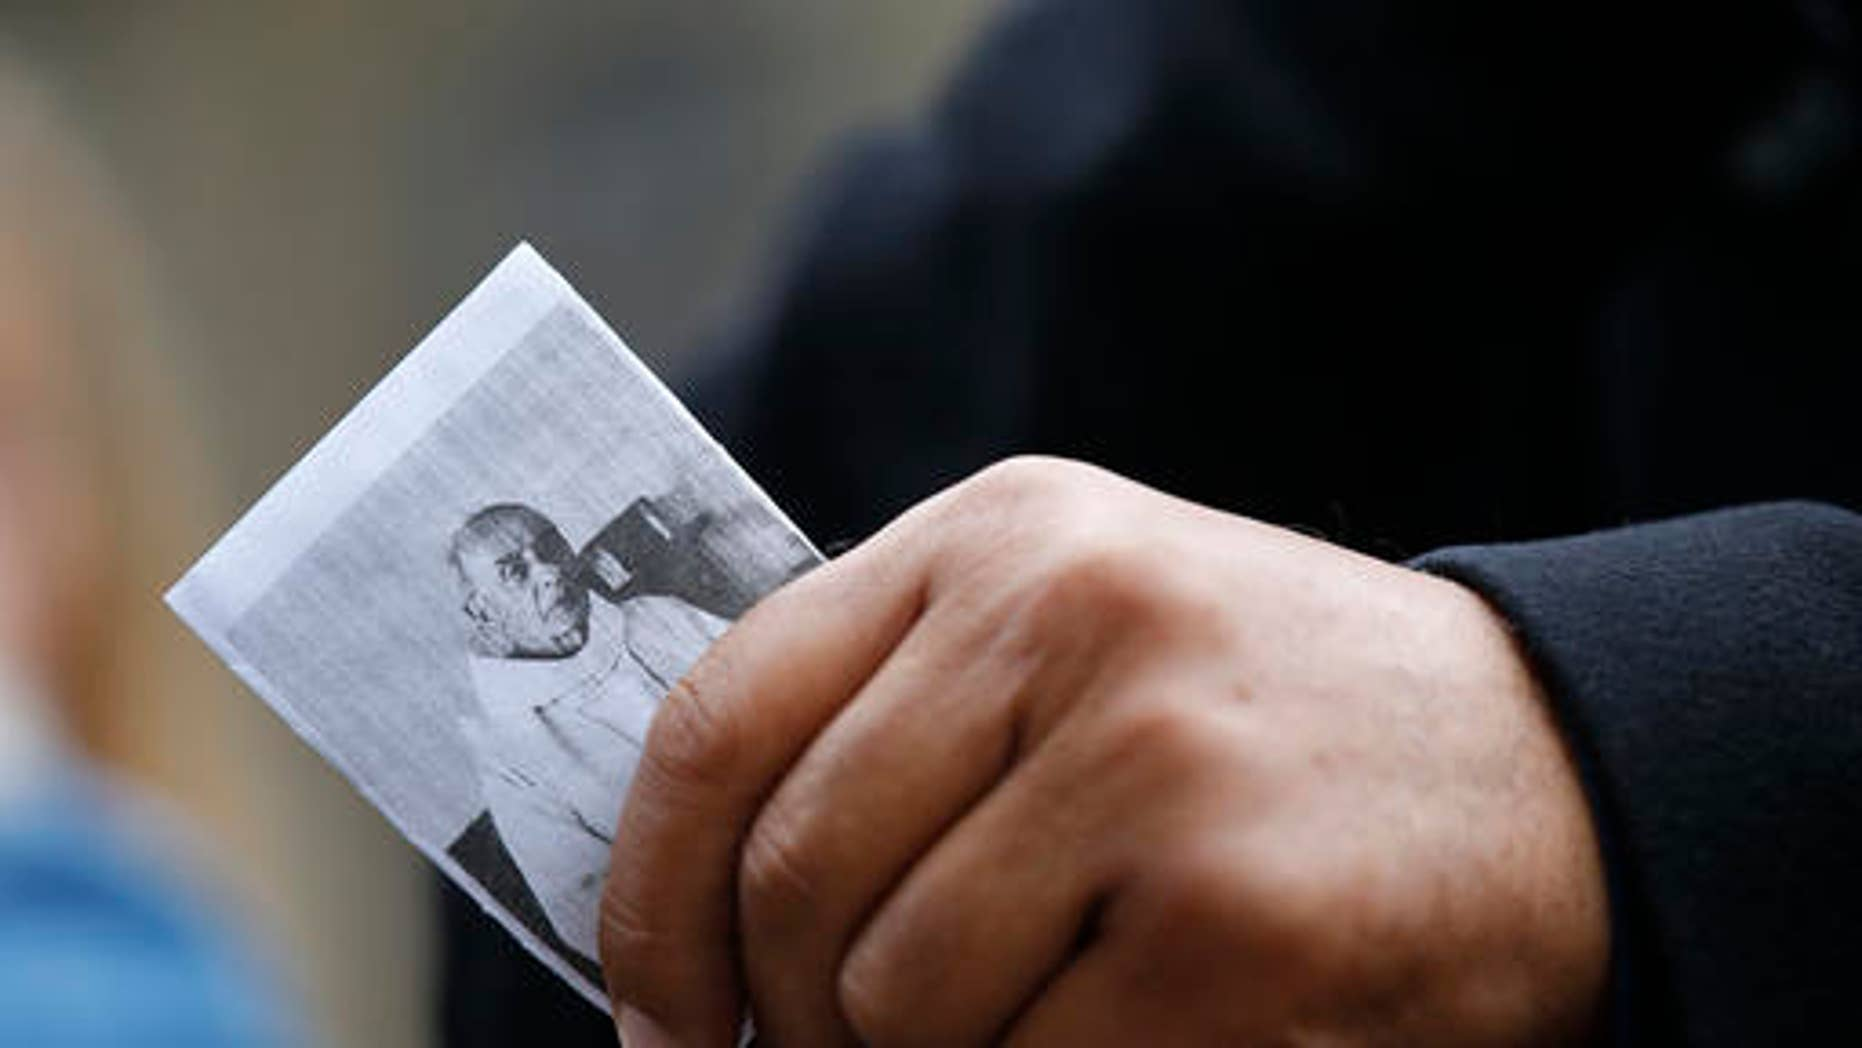 A man holds a religious leaflet showing the priest Jacques Hamel during his funeral mass, outside the Rouen cathedral, Normandy, Tuesday, Aug.2, 2016. Father Jacques Hamel, 85, was killed by two ISIS extremists as he celebrated morning Mass.